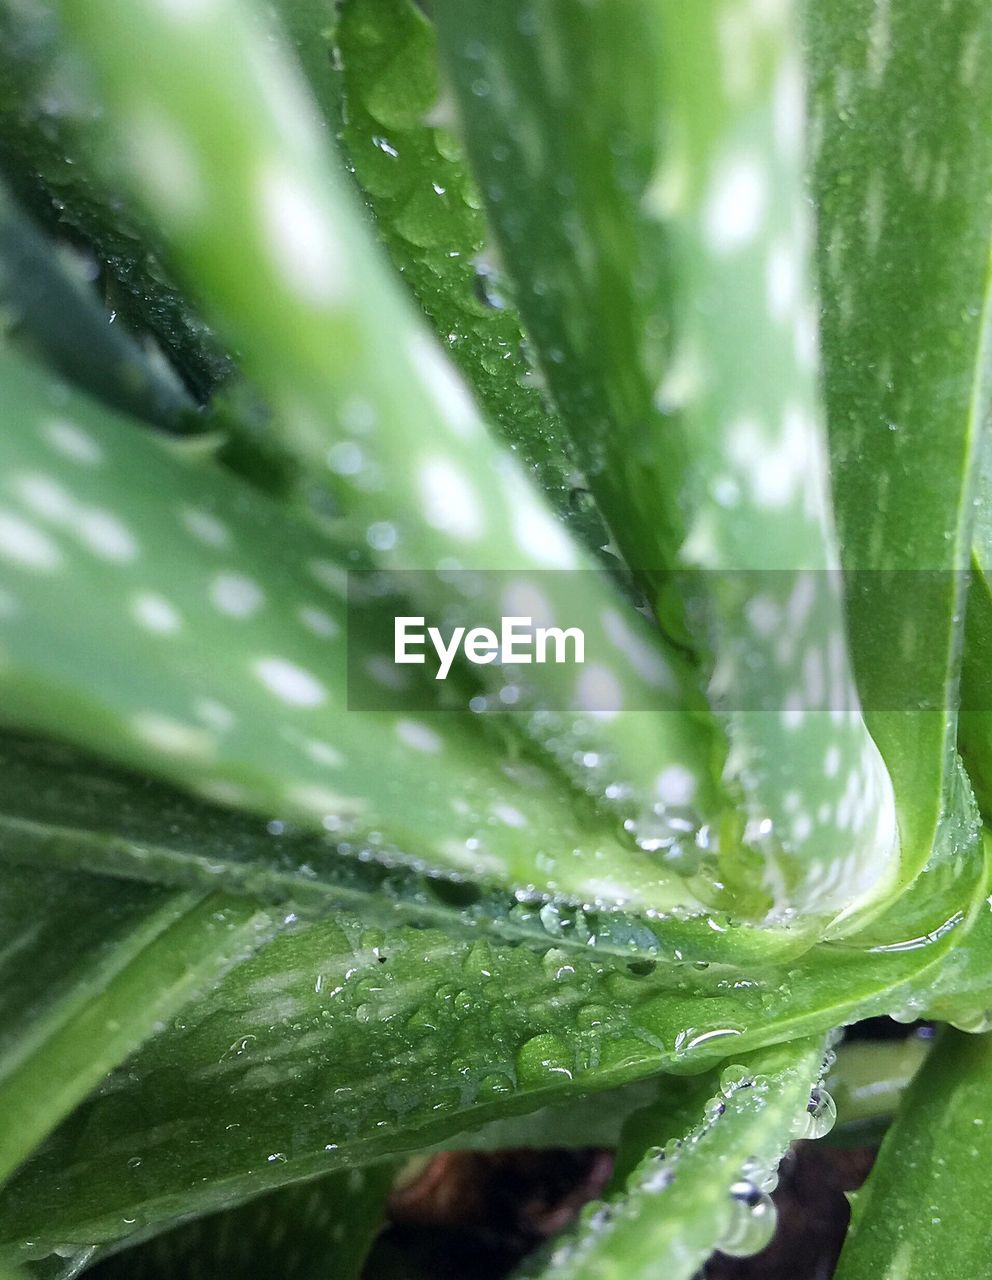 green color, growth, leaf, drop, plant part, plant, close-up, no people, wet, freshness, water, full frame, beauty in nature, nature, day, backgrounds, outdoors, aloe vera plant, selective focus, raindrop, dew, purity